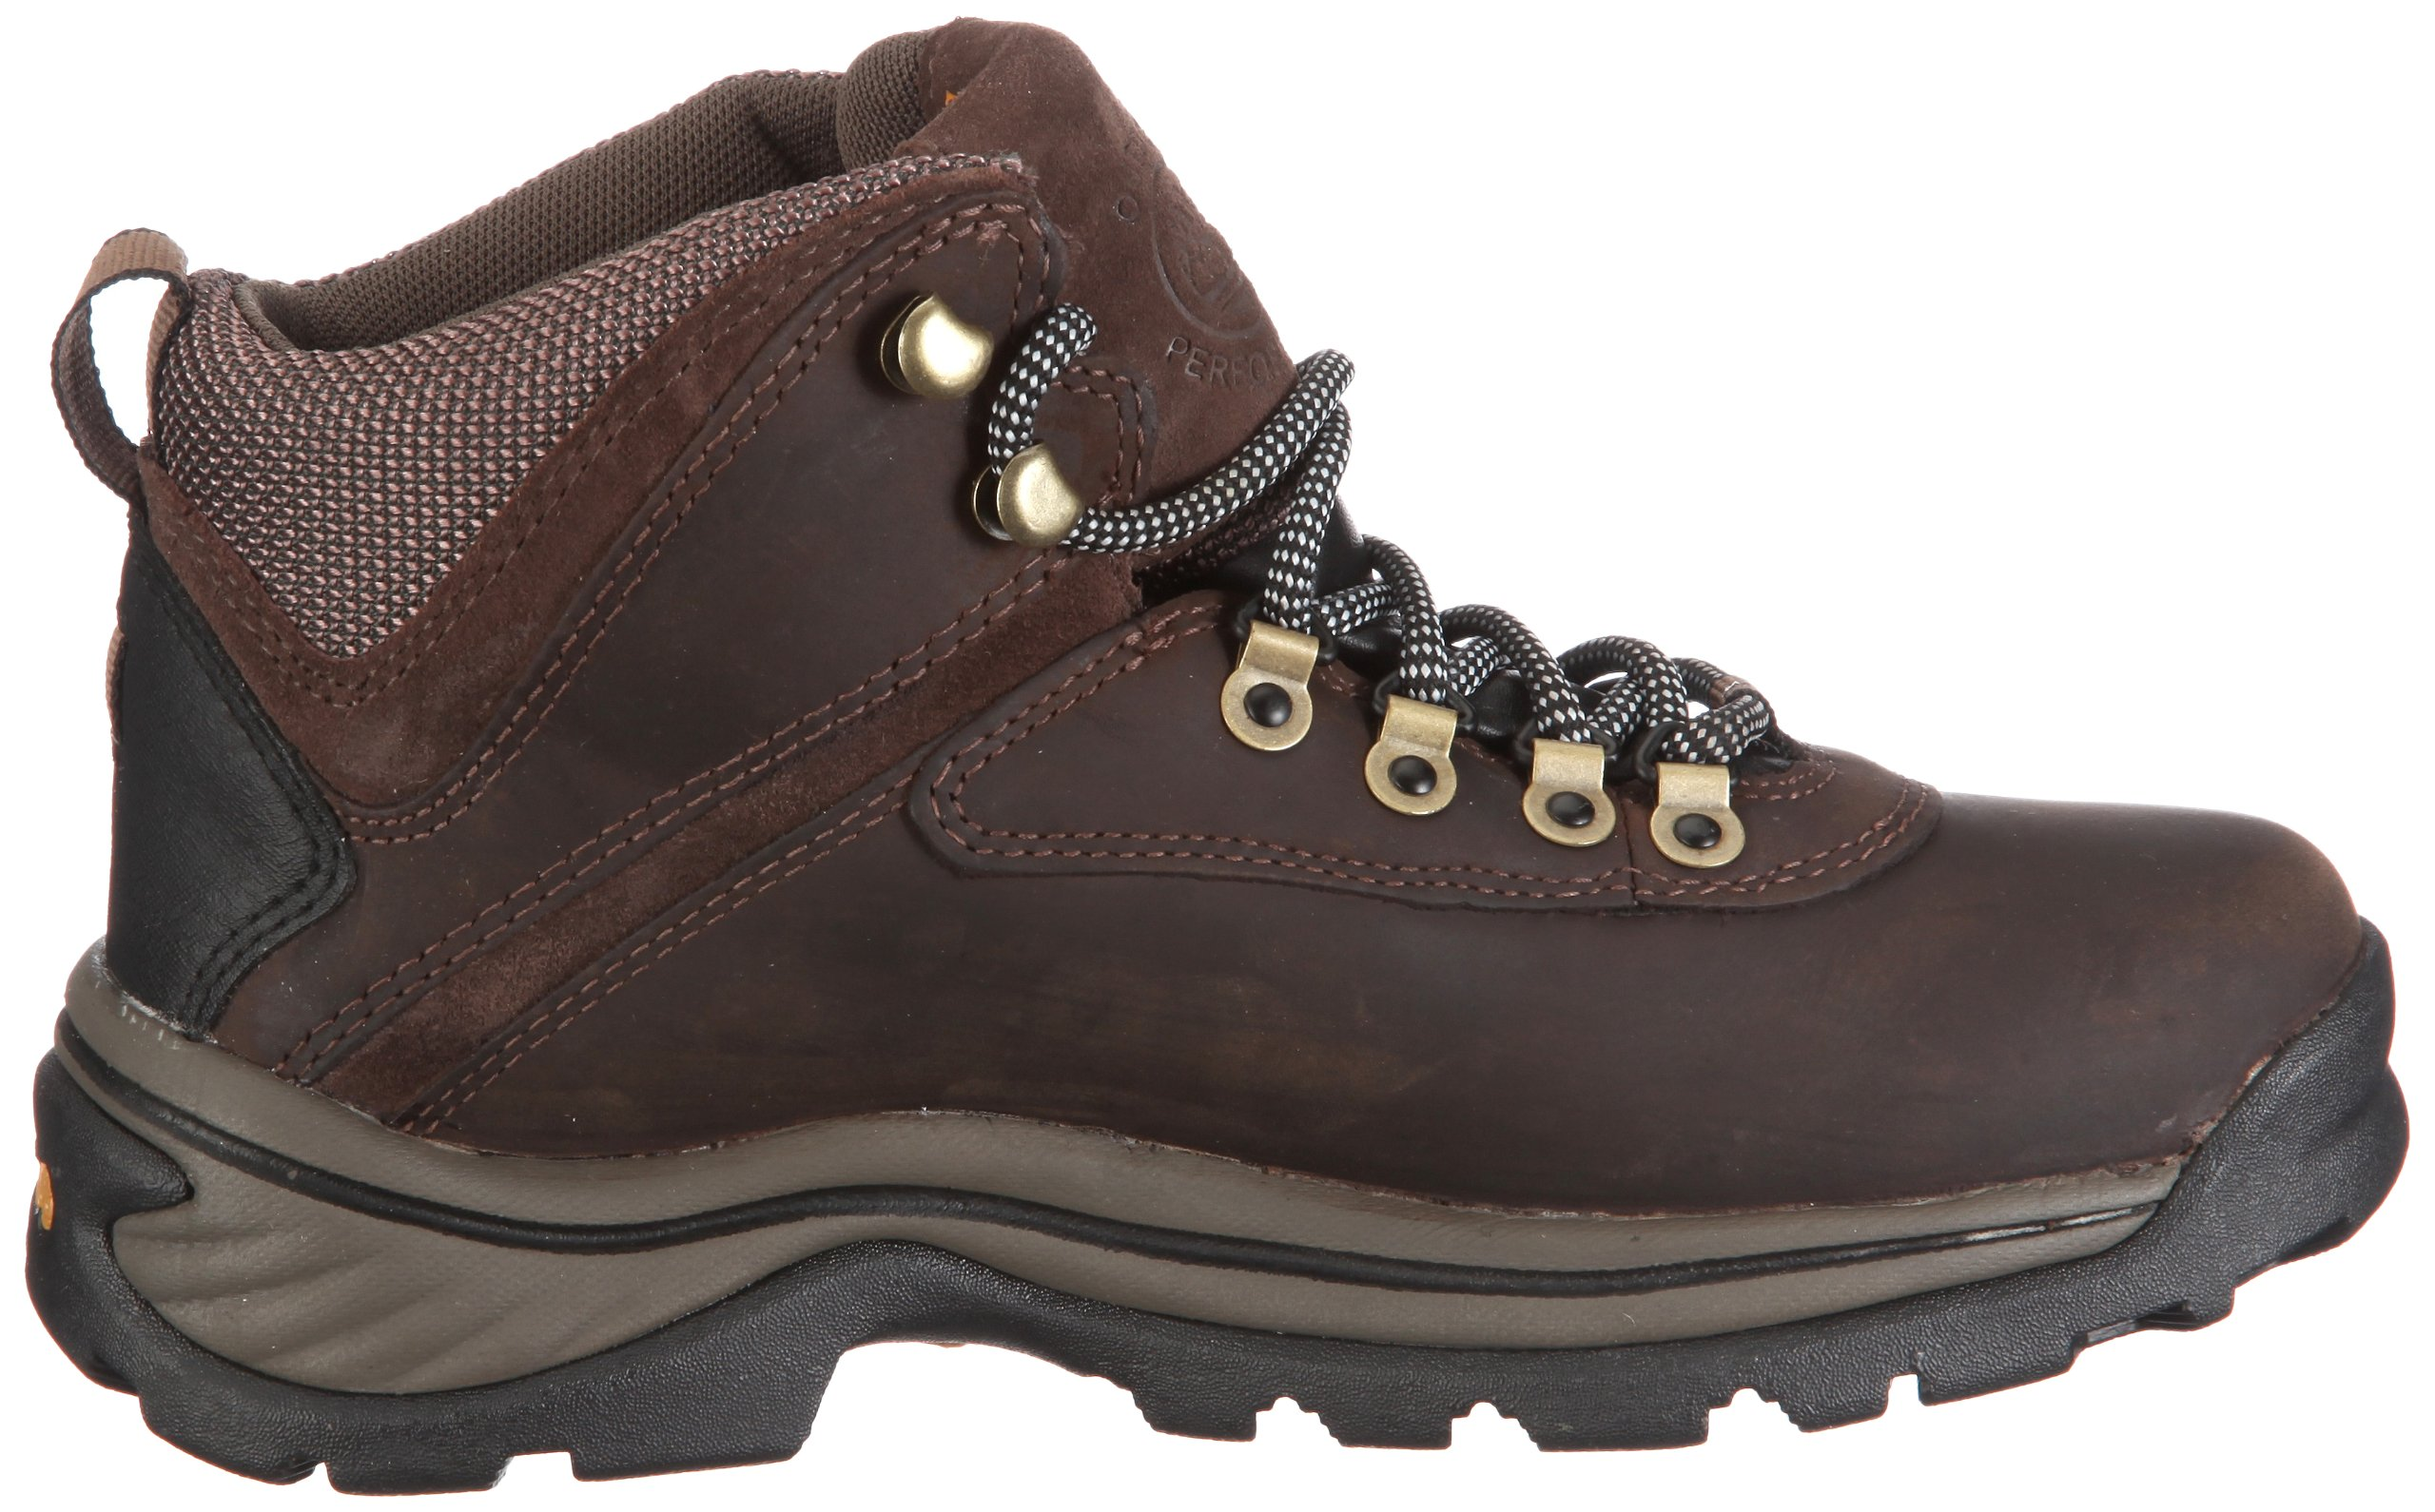 Timberland Women's White Ledge Mid Ankle Boot,Brown,9.5 W US by Timberland (Image #6)